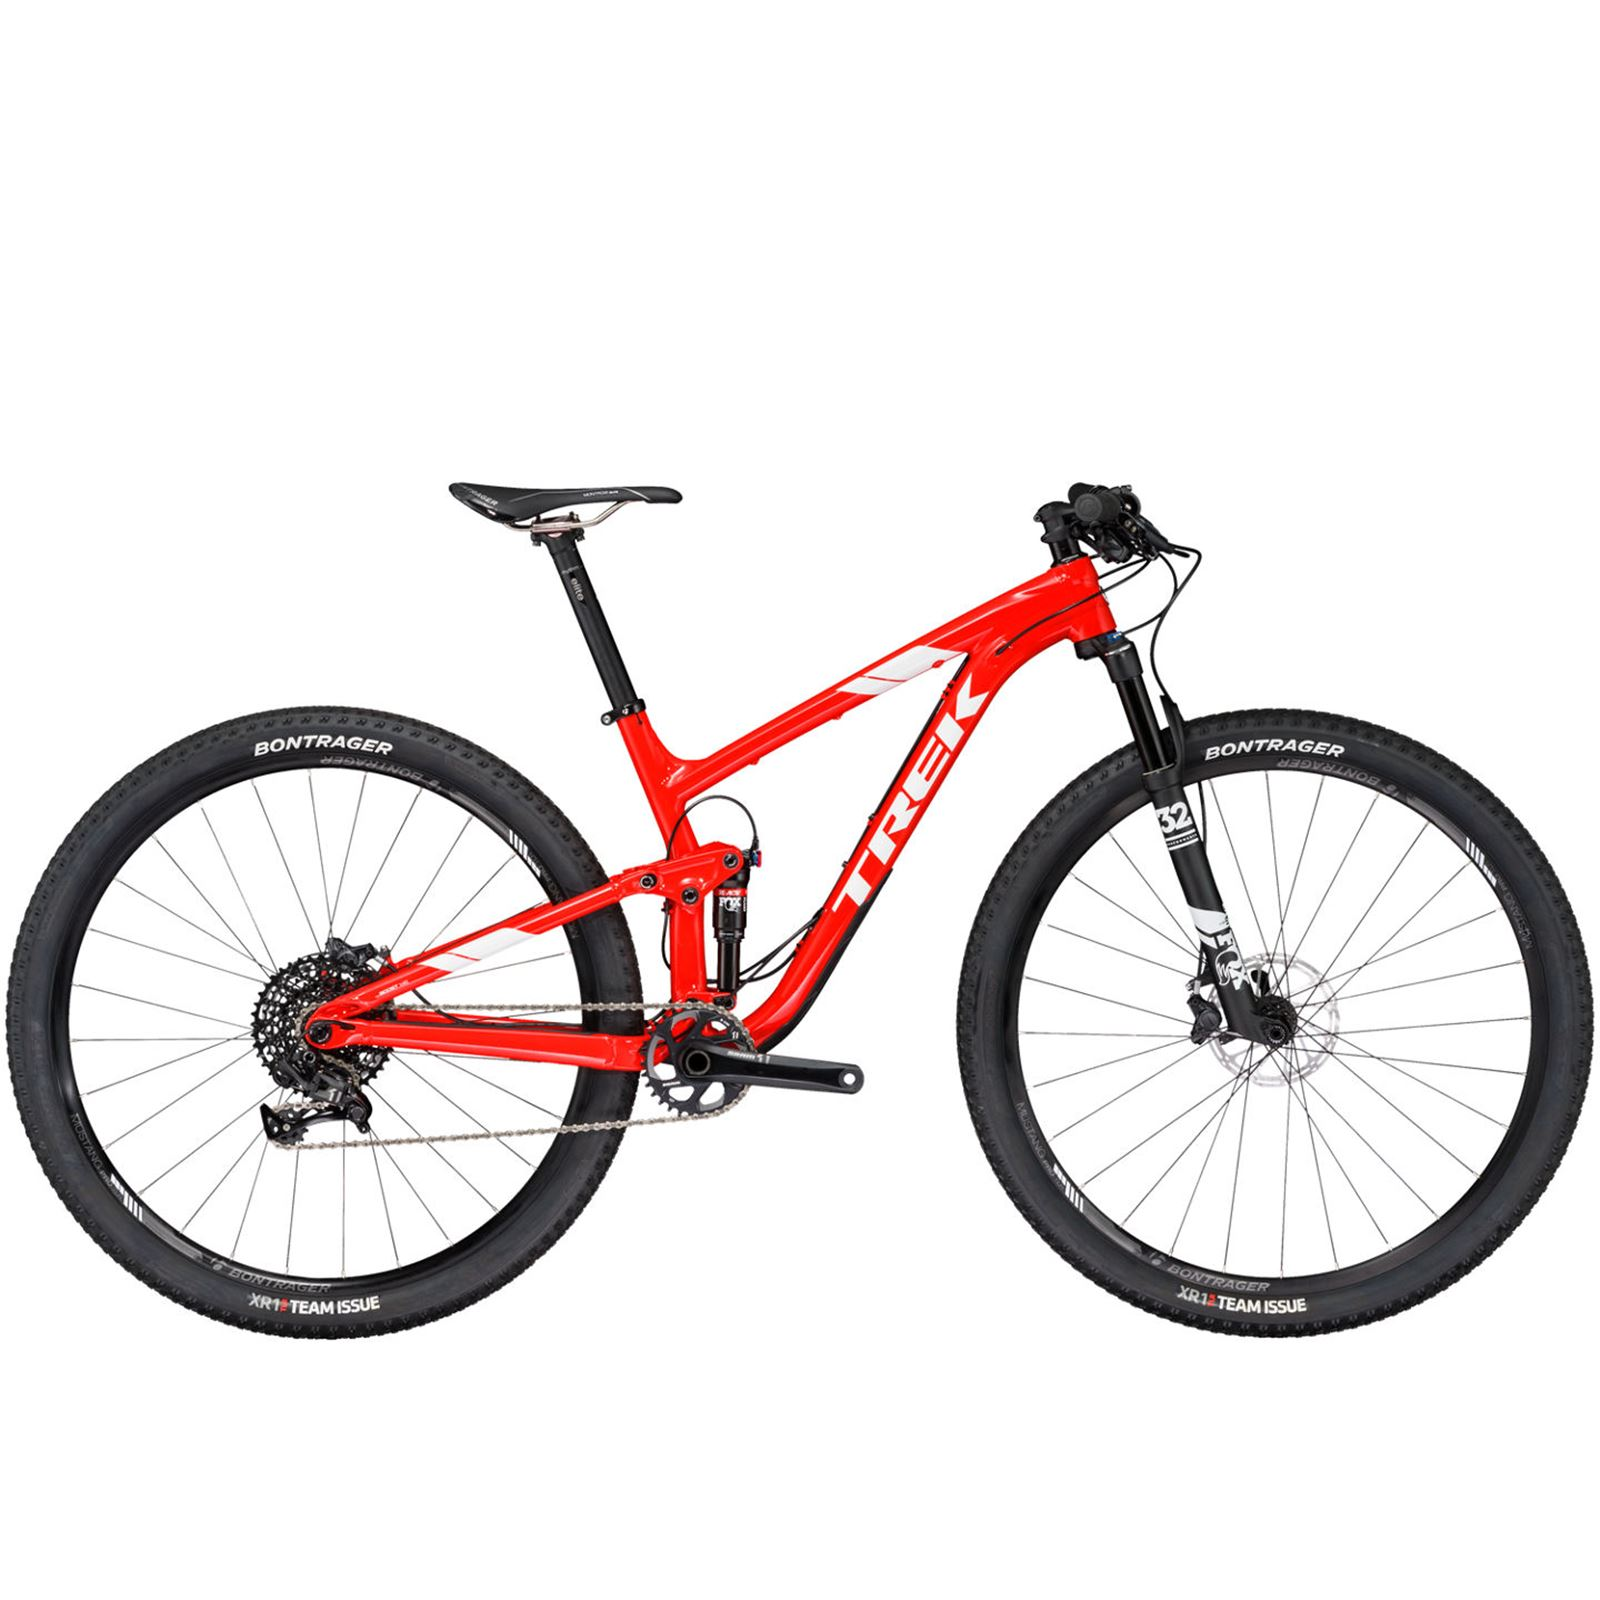 TREK TOP FUEL 9 T17.5 ROJO UPGRADE GX EAGLE 2017 Azken Kilometroa